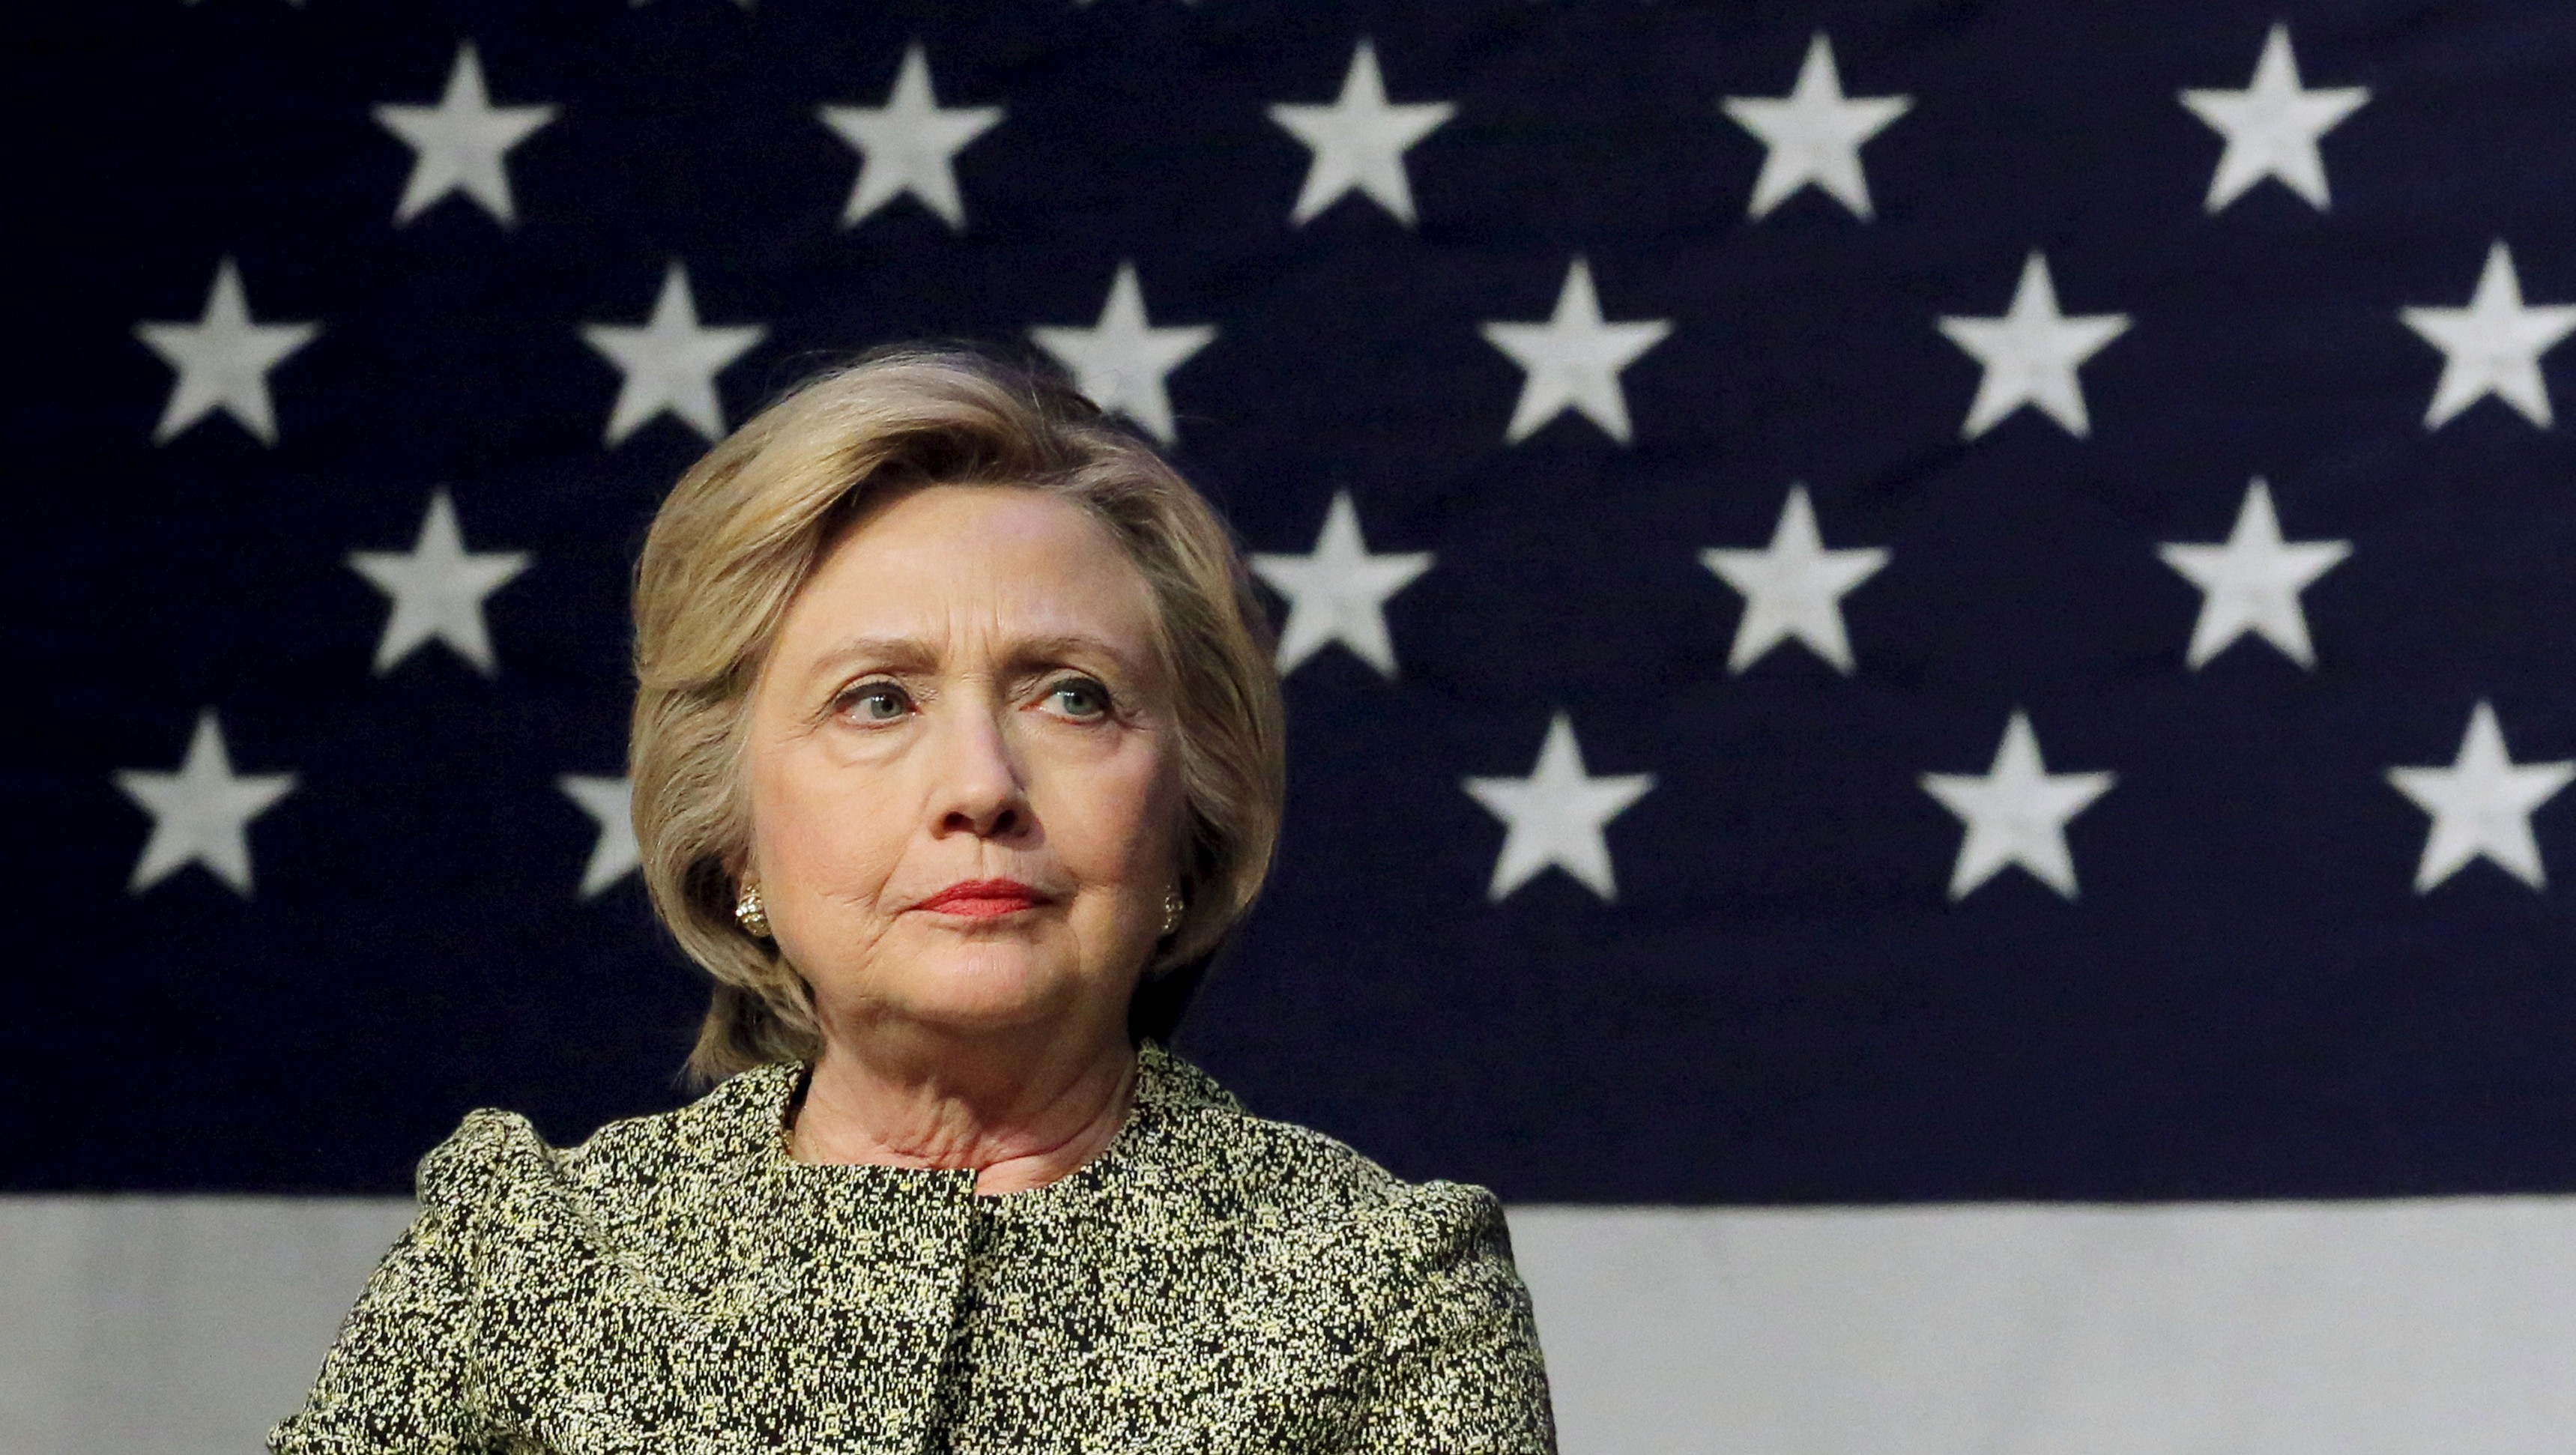 Democratic U.S. presidential candidate Hillary Clinton takes part in a gun control panel in Port Washington, New York